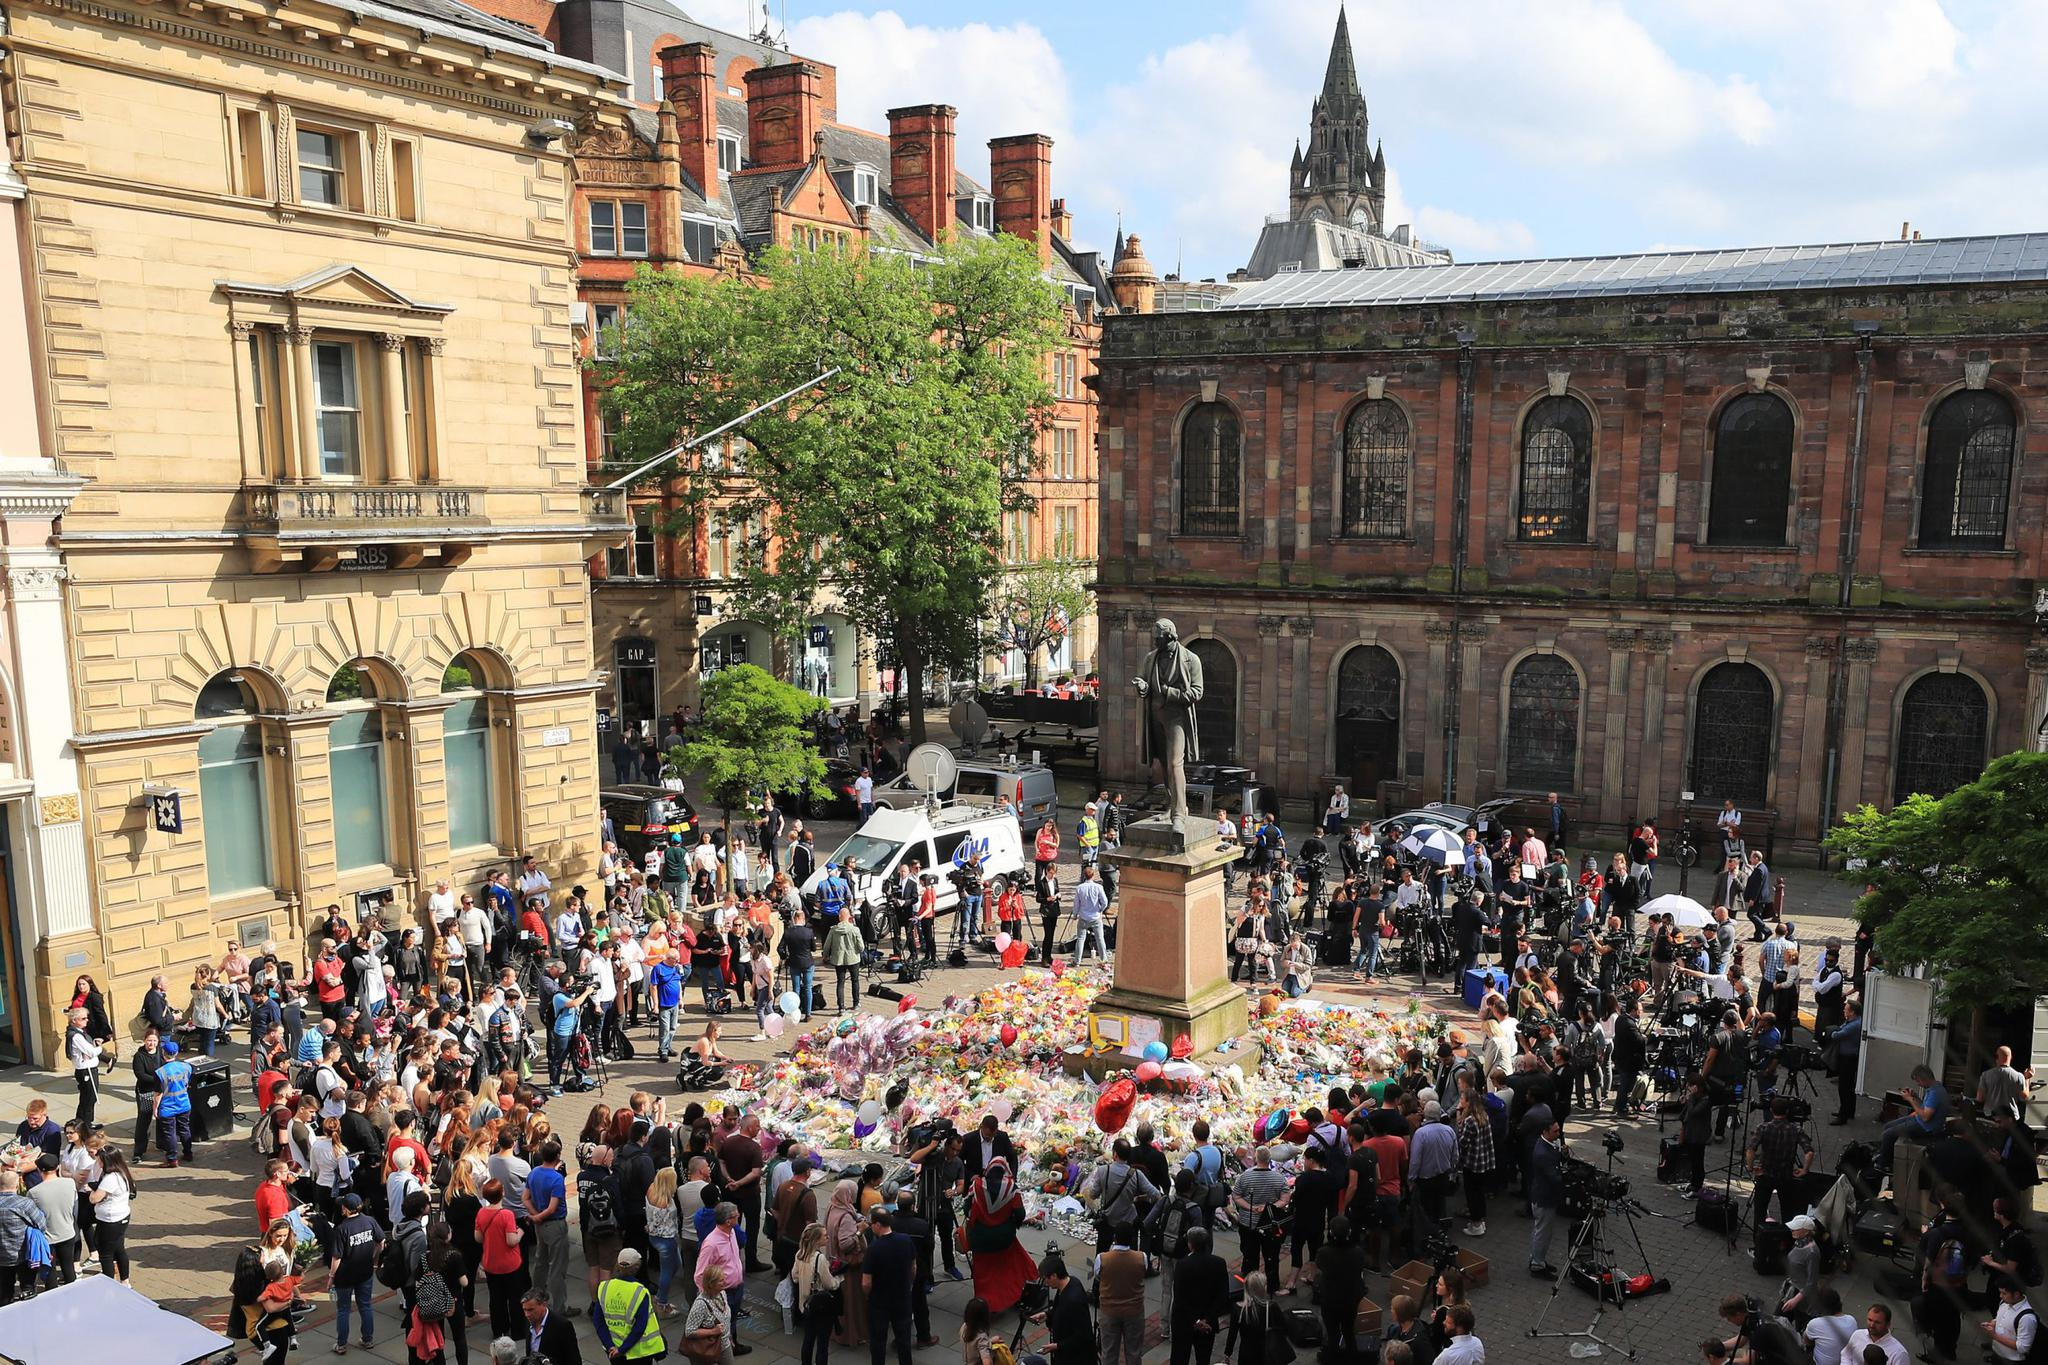 People look at flowers in St. Ann's Square, close to the Manchester Arena where a suicide bomber killed 22 people leaving a pop concert at the venue on Monday night.